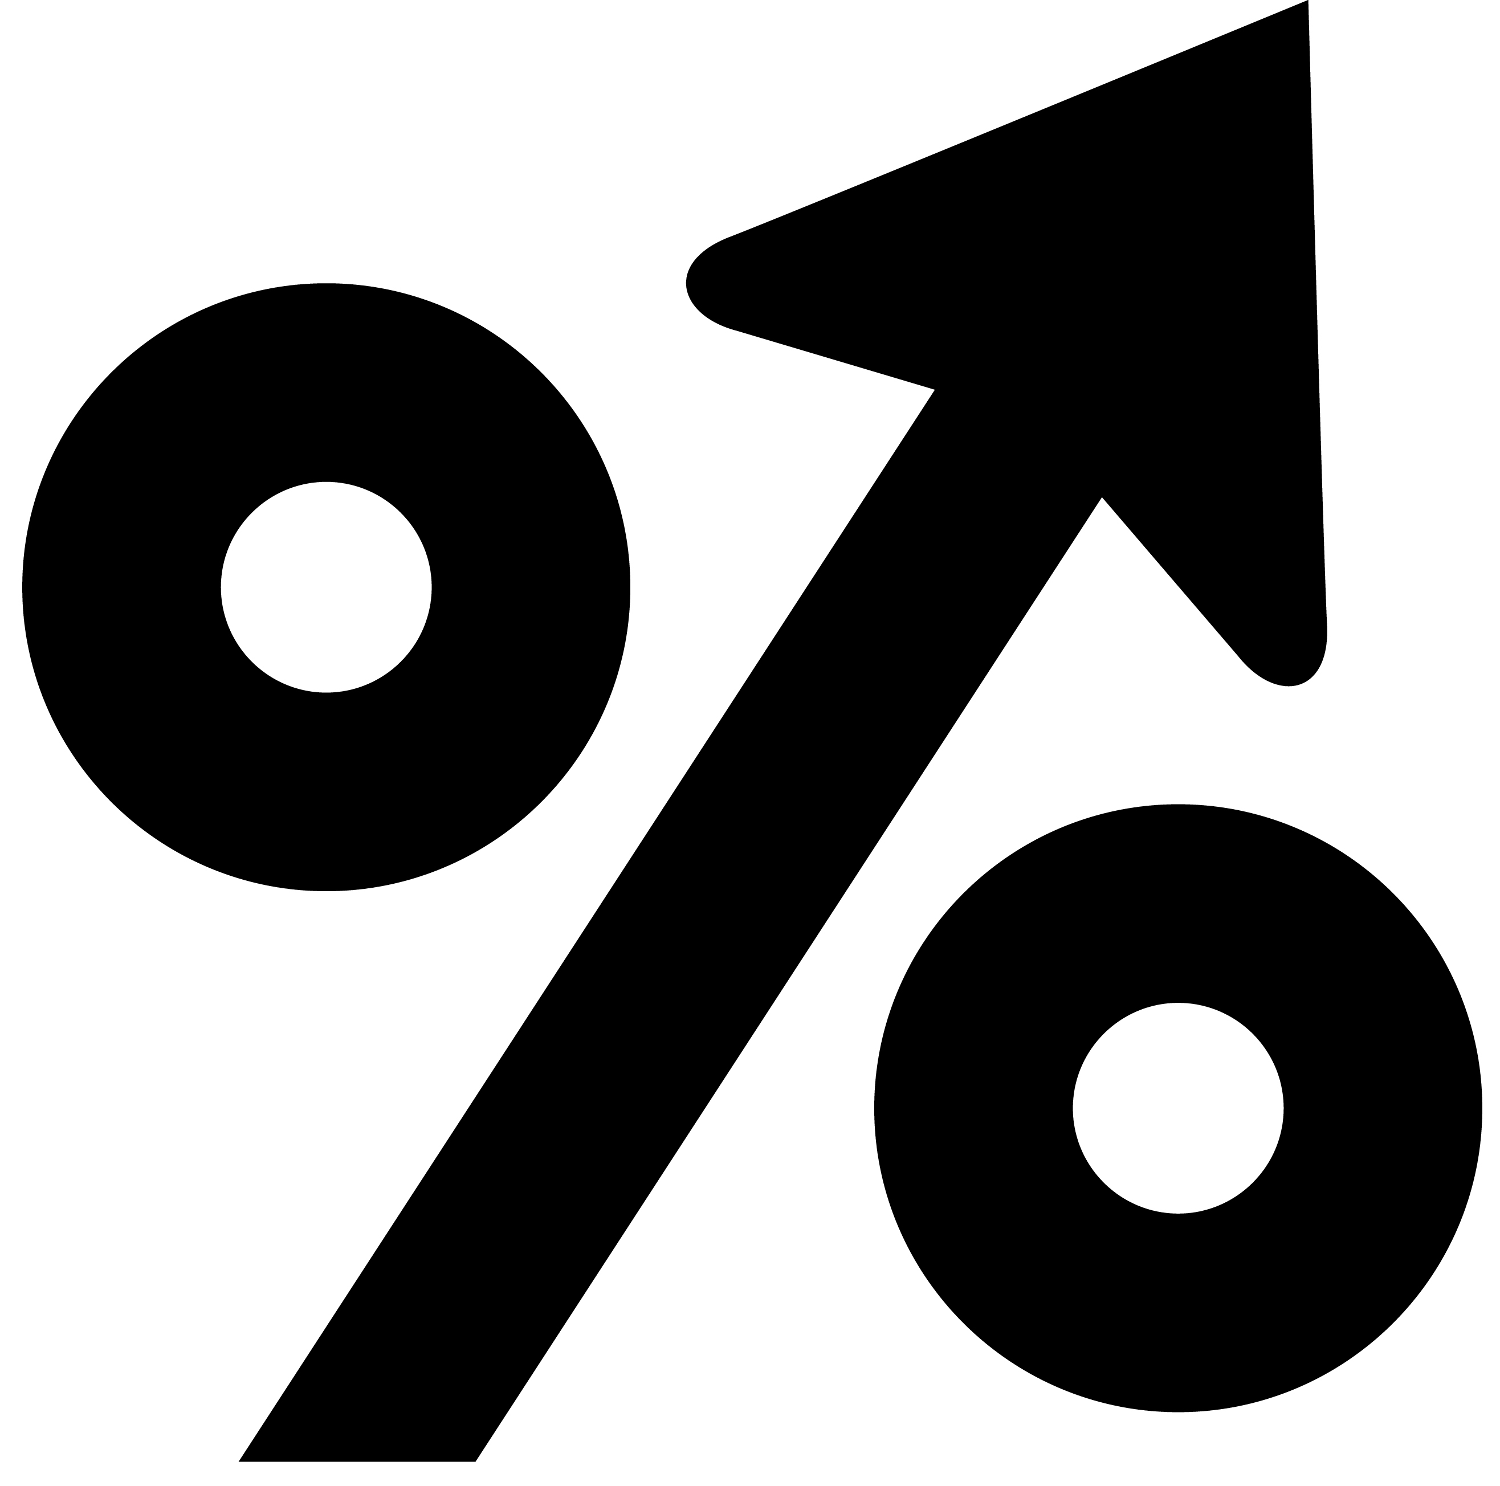 icon with percent symbol and up arrow to symbolize percent increase